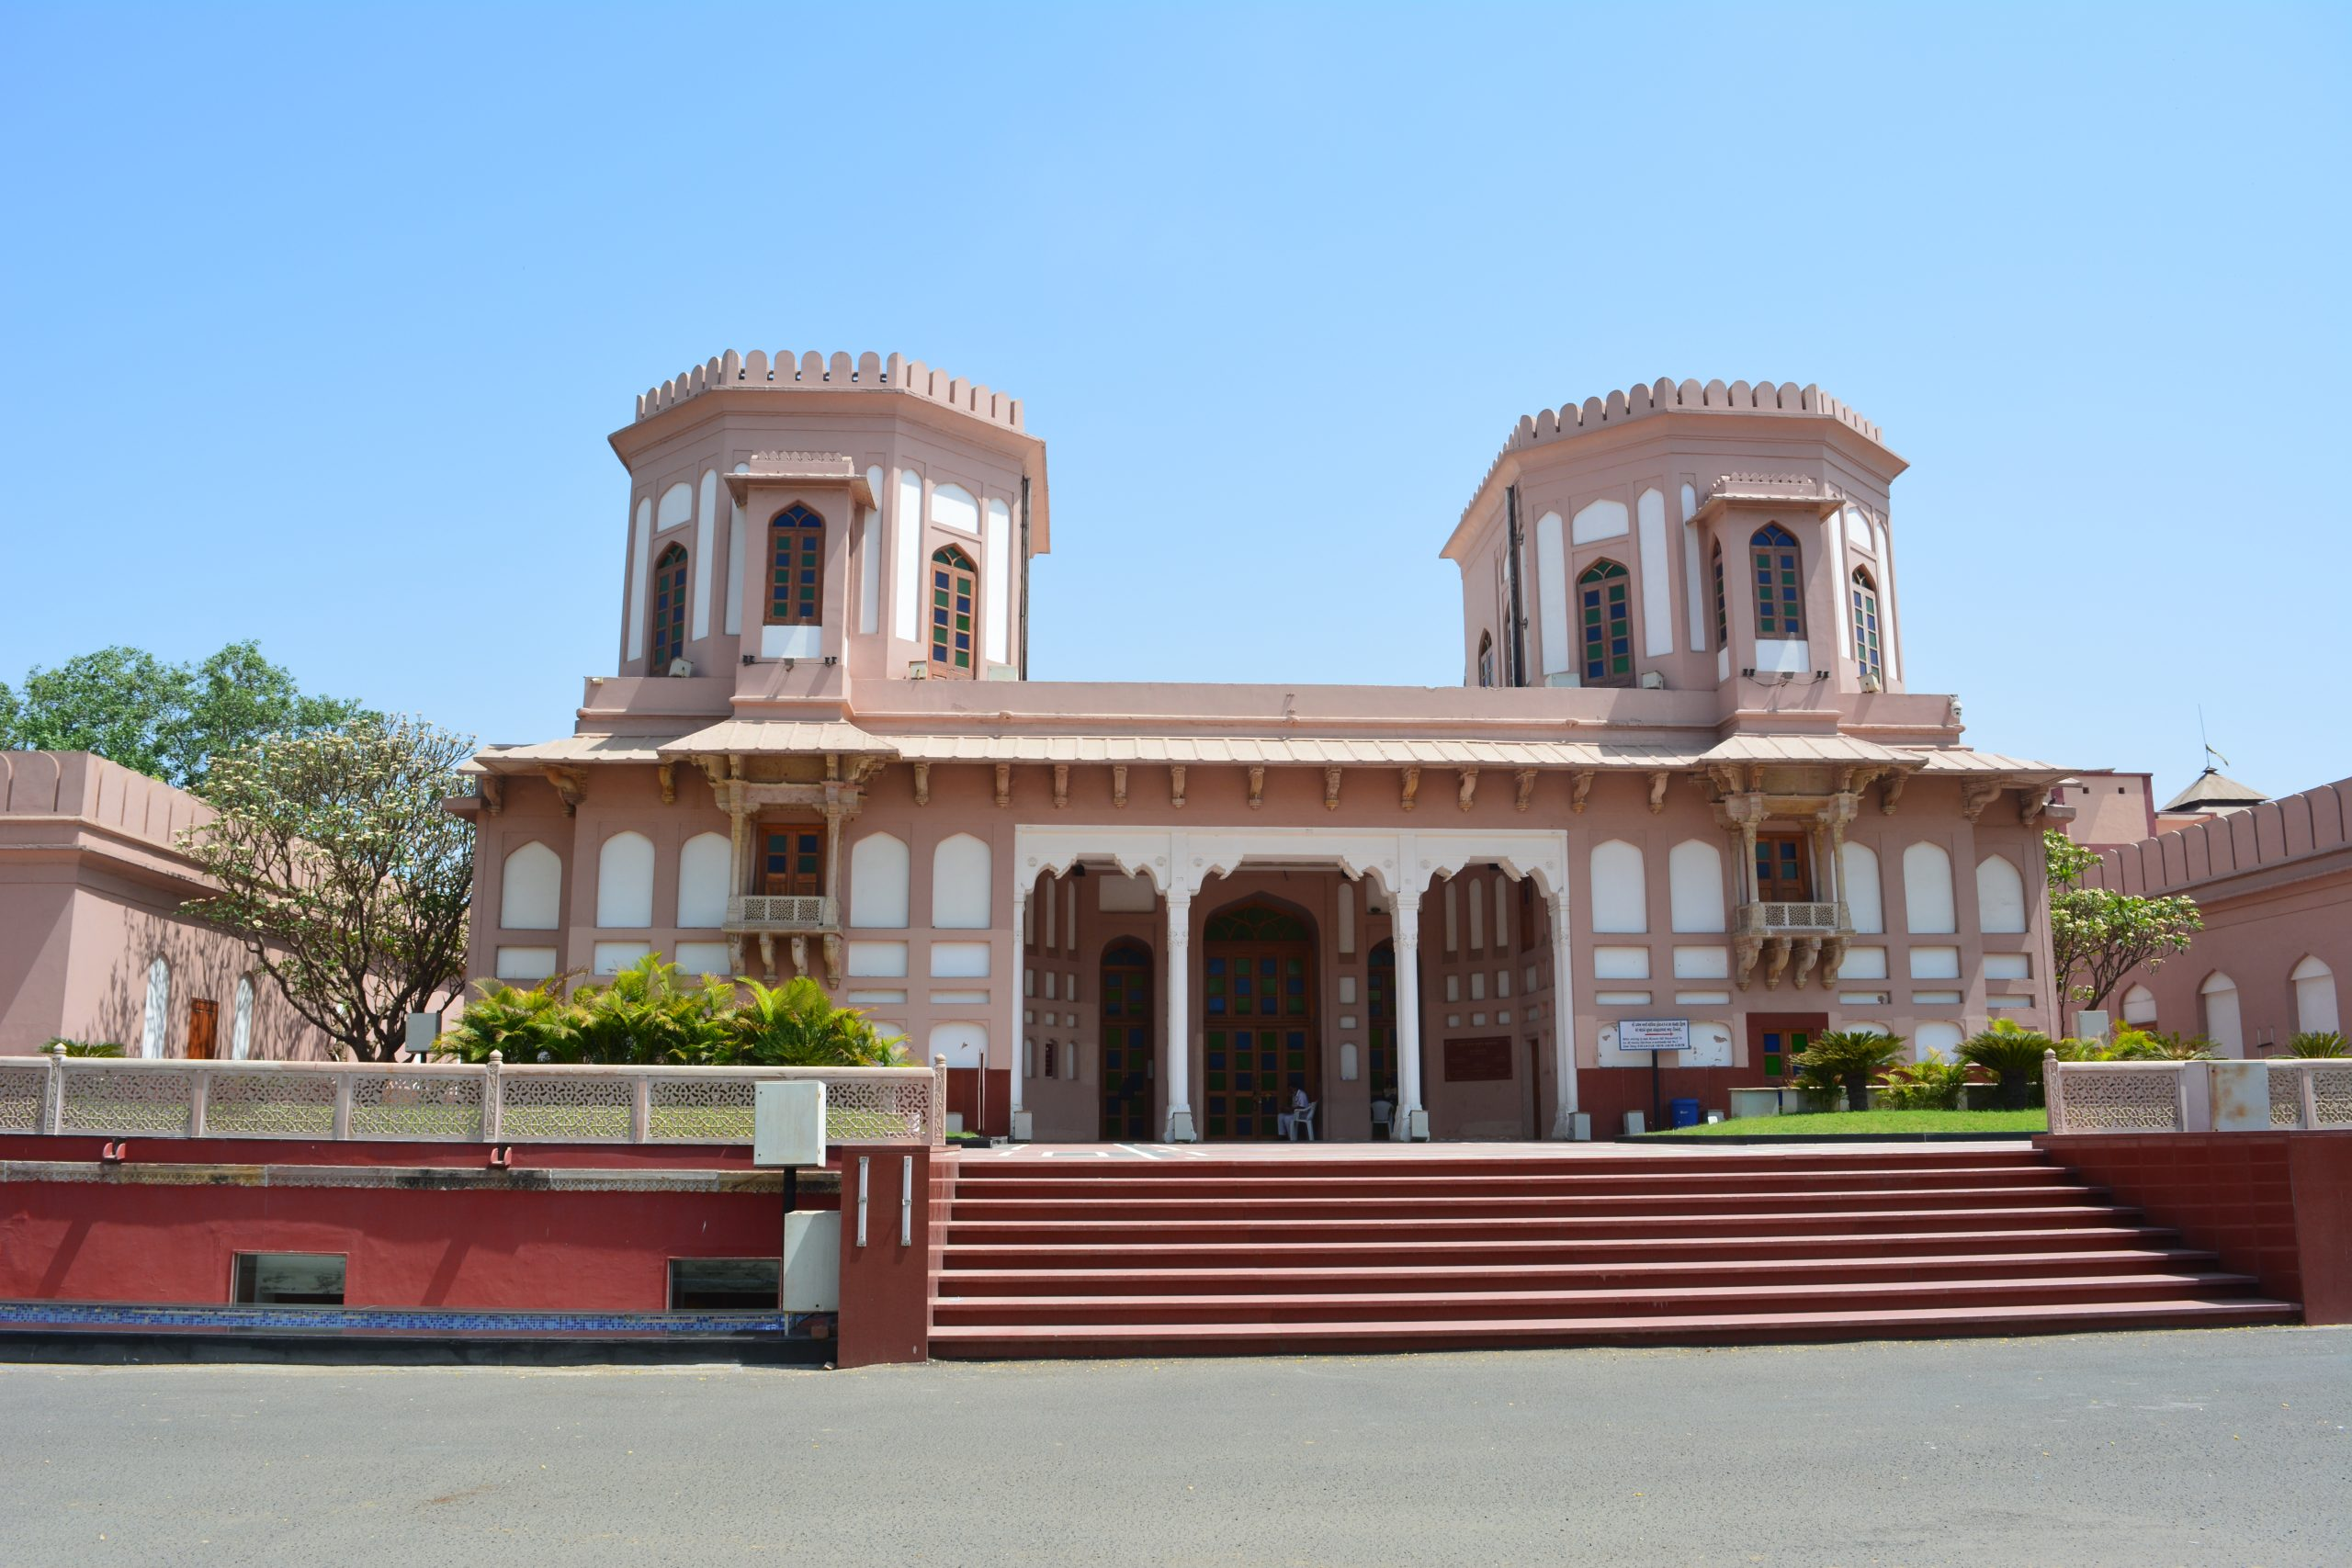 Sardar Vallabhbhai Patel National Museum - Things to Do in Ahmedabad